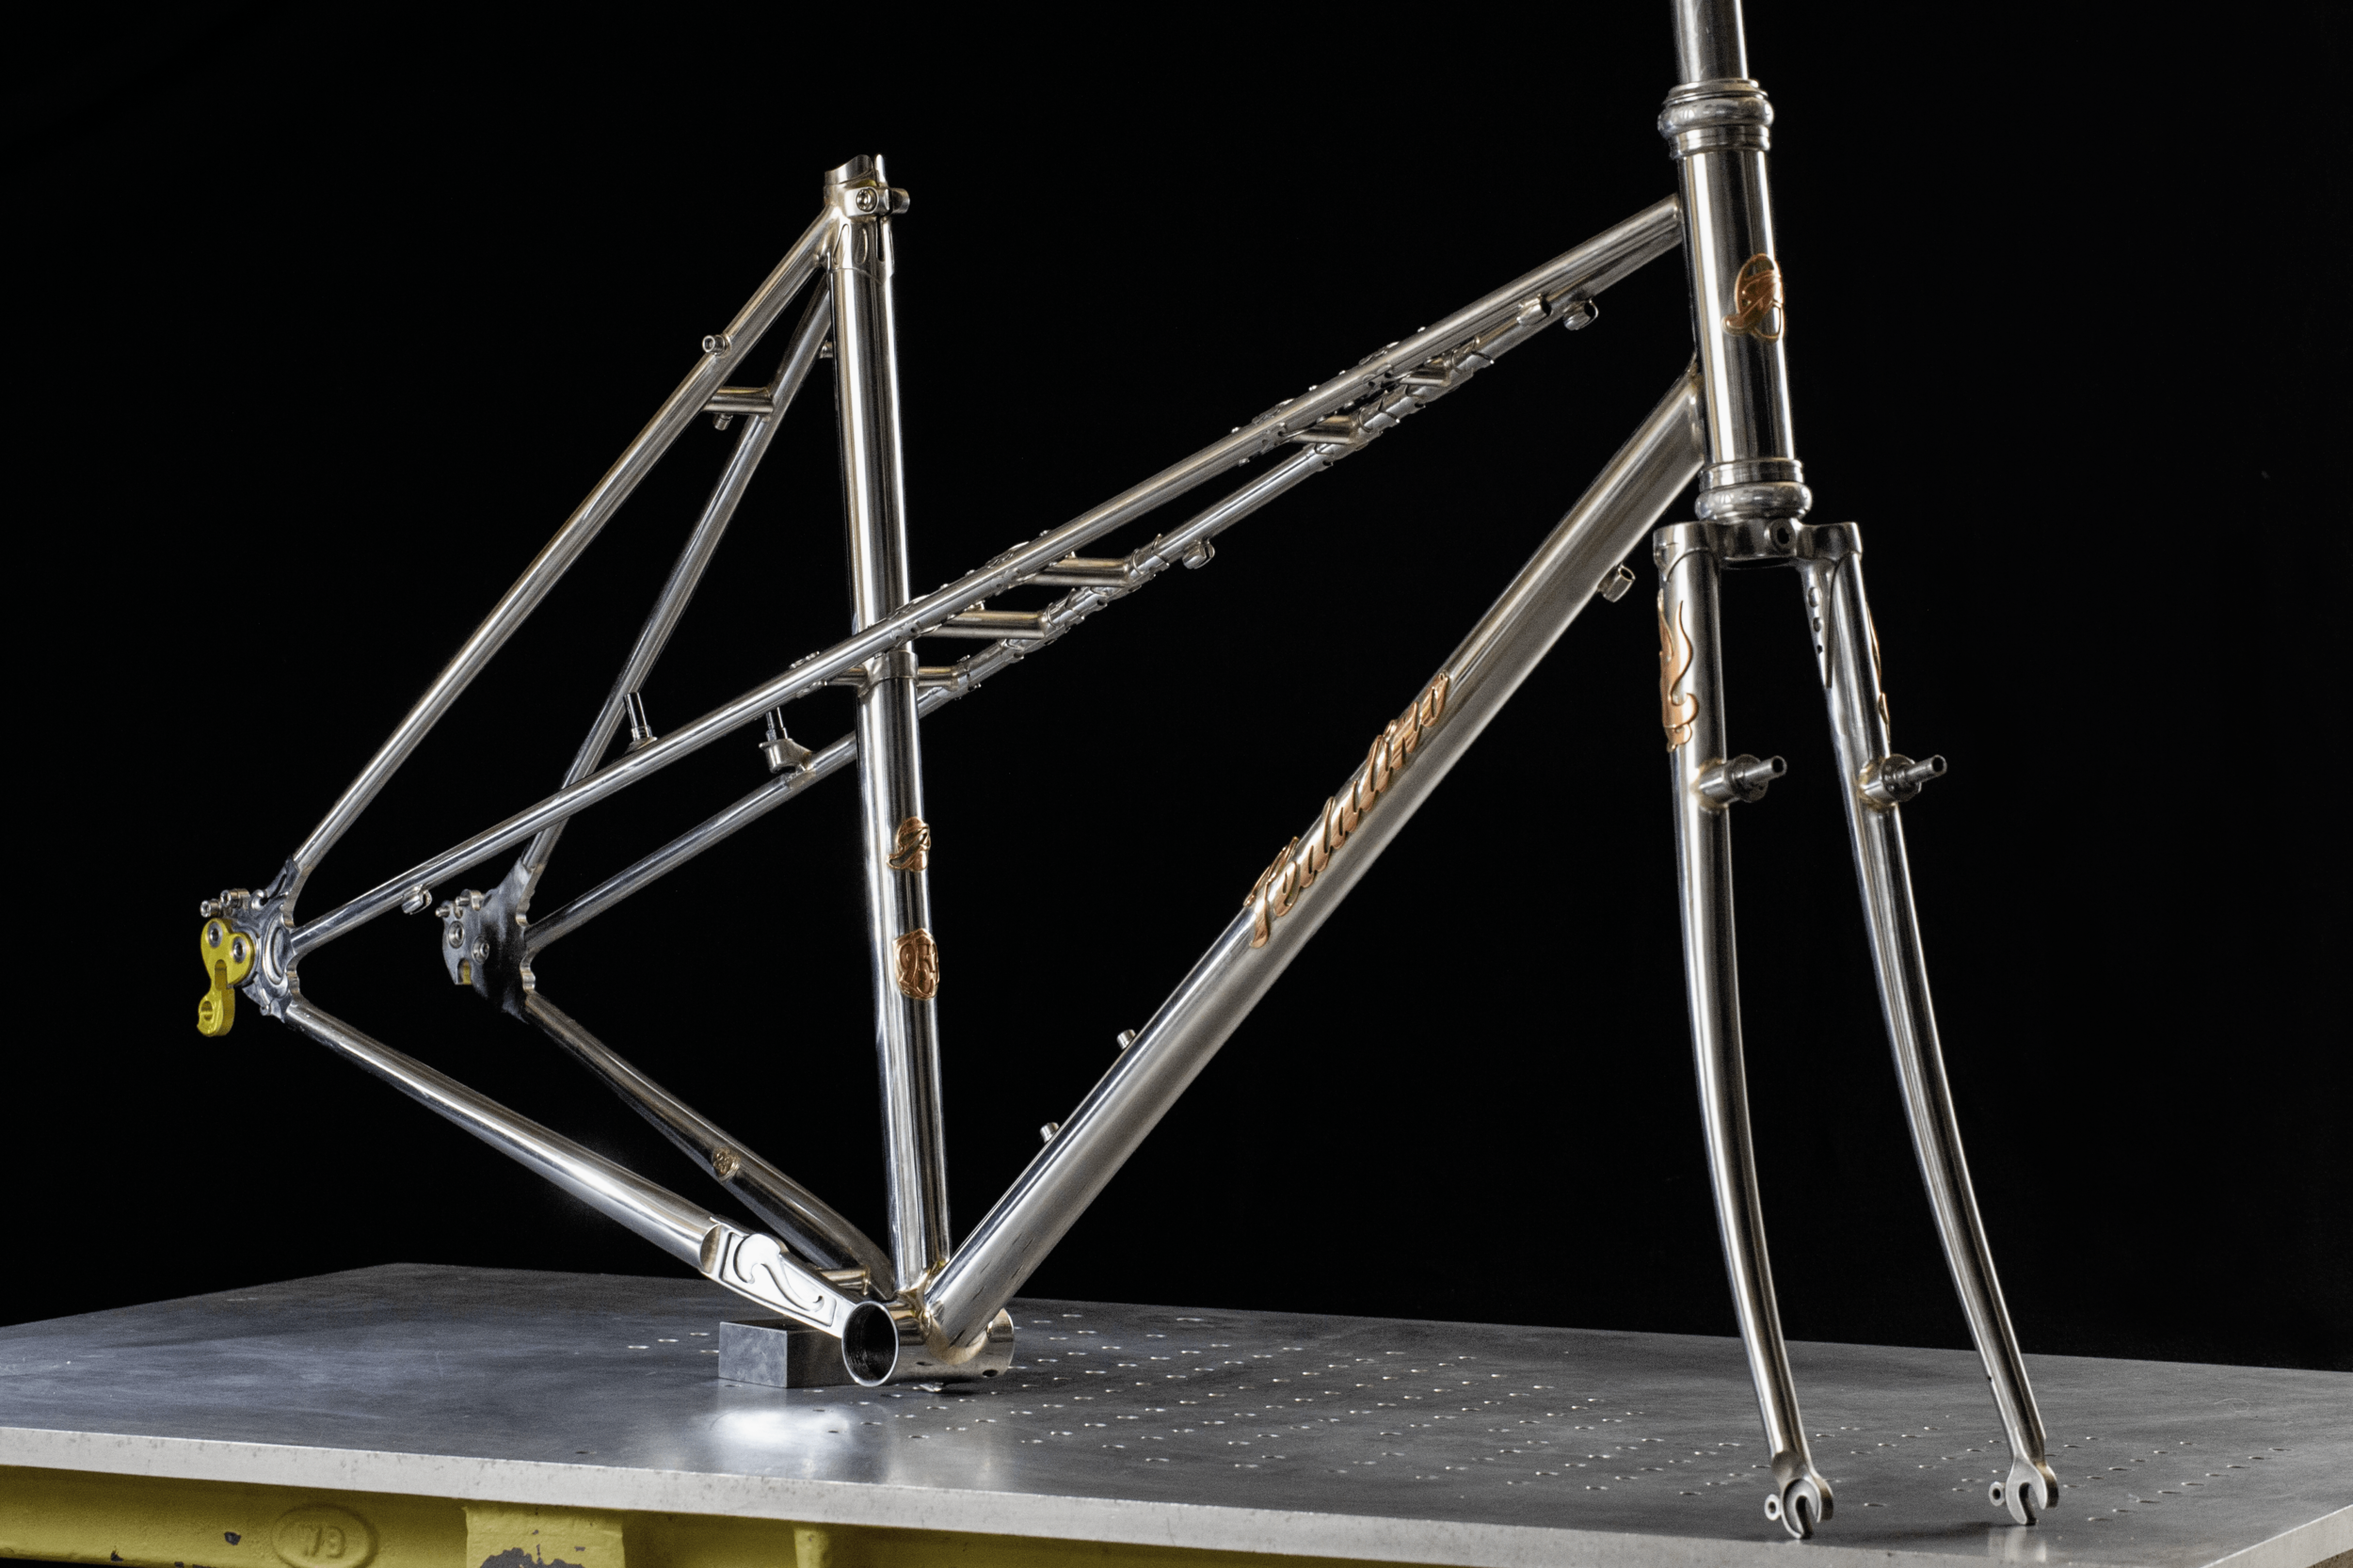 Stephen's 953 Mixte Frameset - Reynolds 953 stainless steel frame and fork with in-house CNC machined dropouts, chain stay plate, and bridge reinforcement sleeves. Raw polished finish with copper badges.